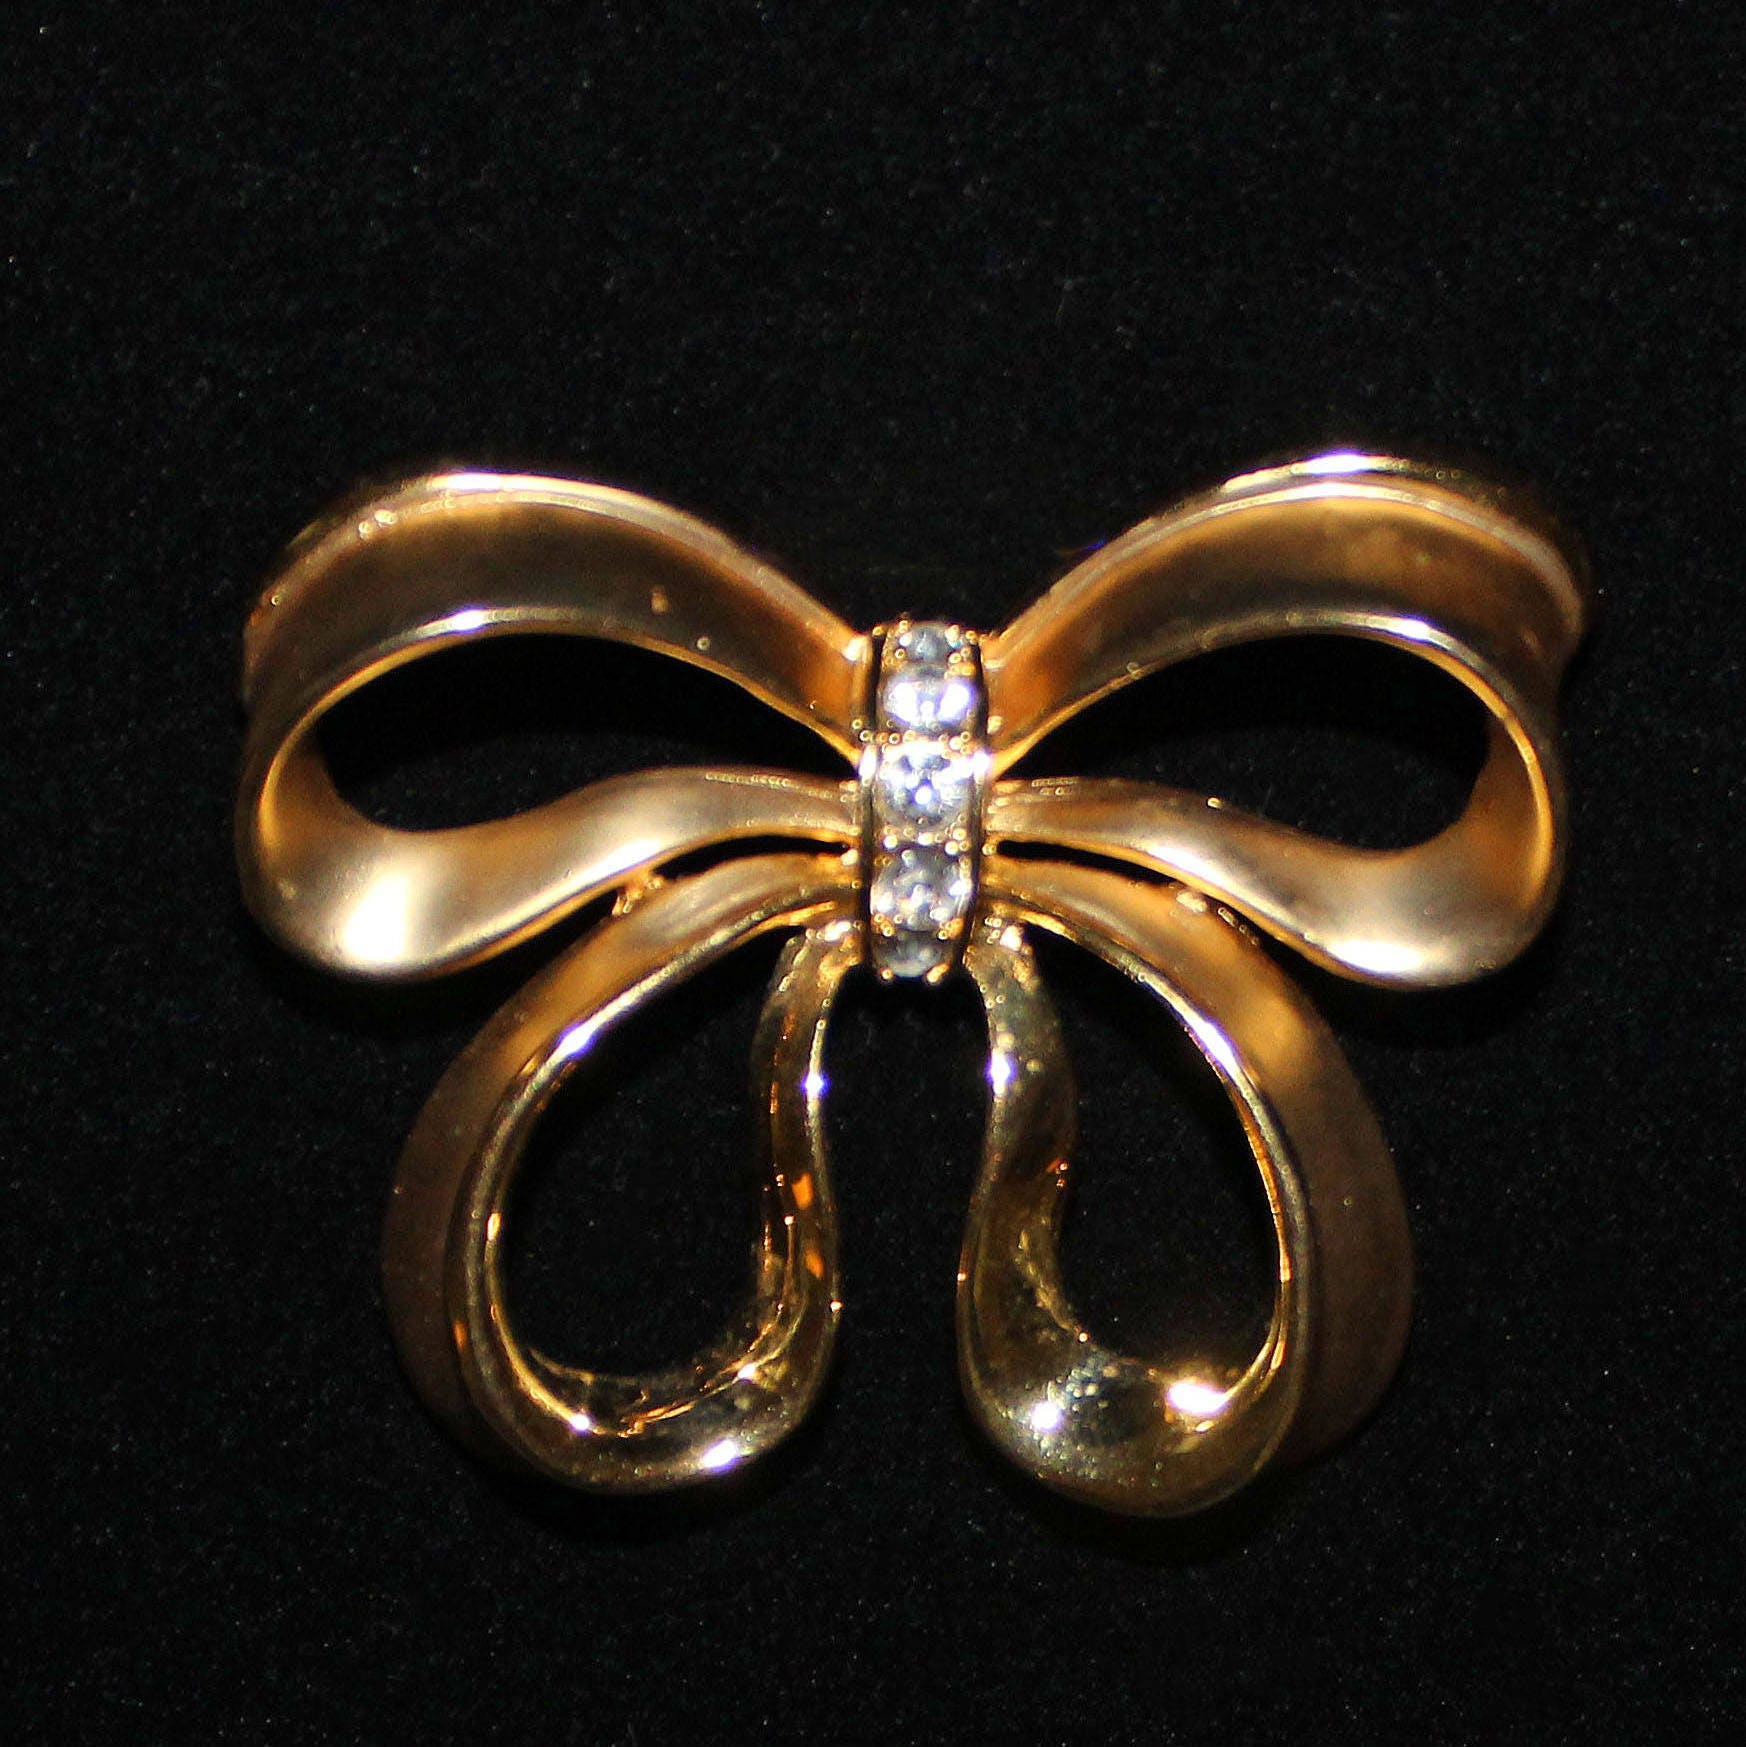 1e71647e9cc5e Vintage NAPIER Figural Bow Brooch with Clear Rhinestones Gold Plated on  Base Metal